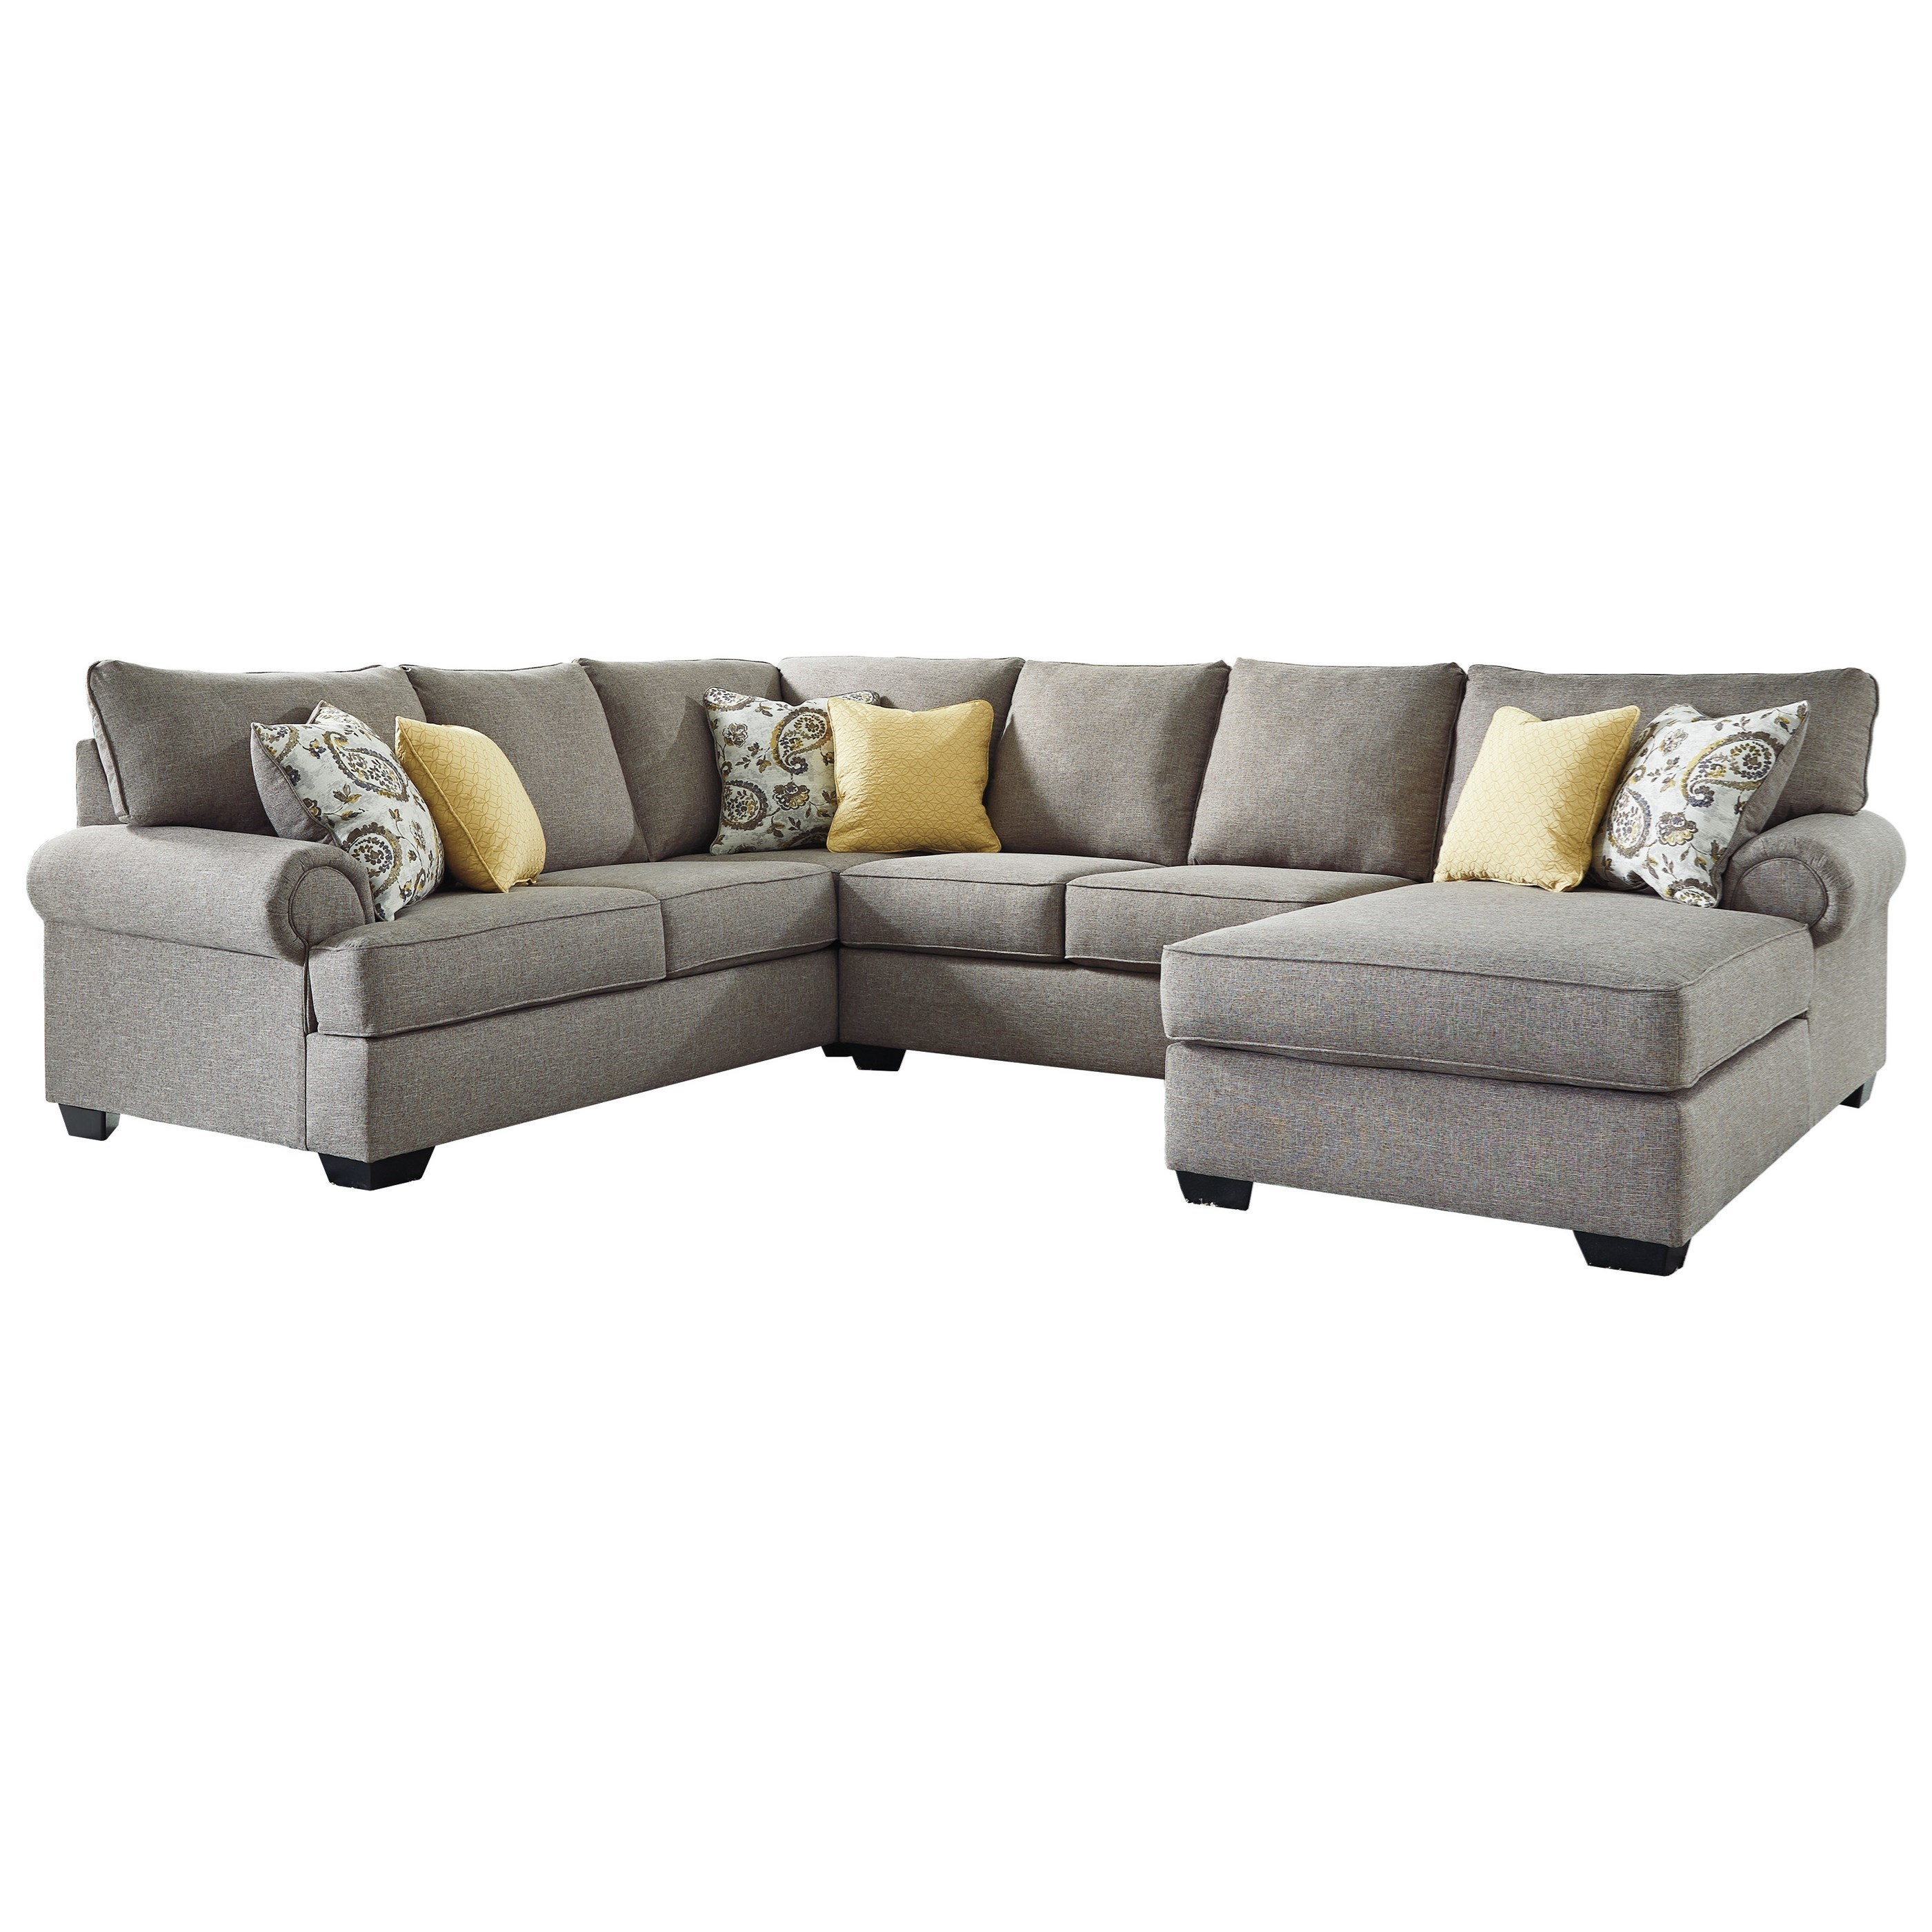 chaise sofas perth warehouse direct bayswater old fashioned looking benchcraft renchen sectional northeast factory